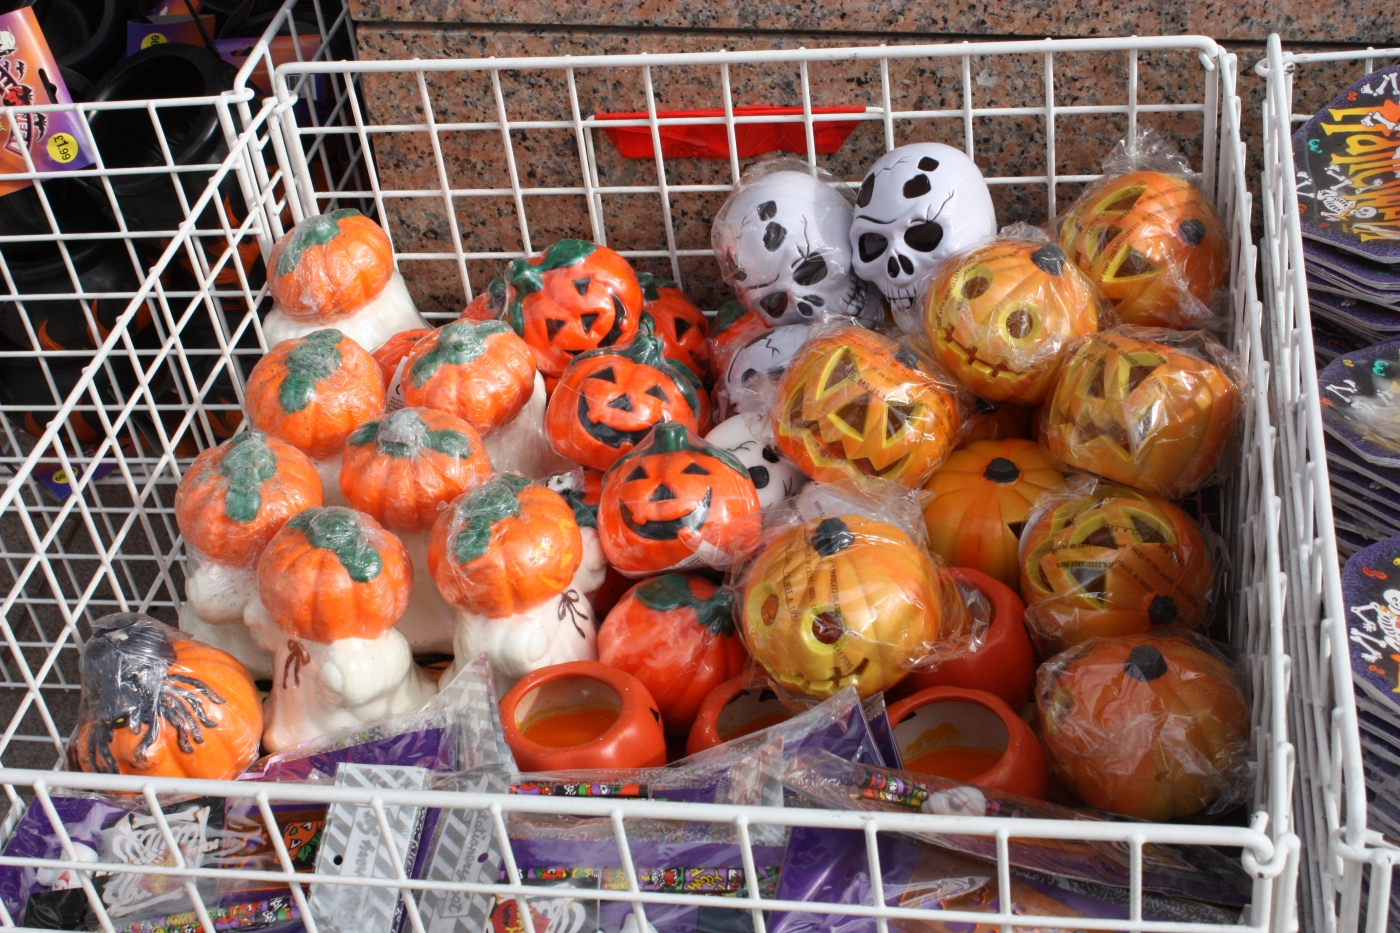 poorly timed halloween decorations take a toll on holiday enjoyment michelle christian